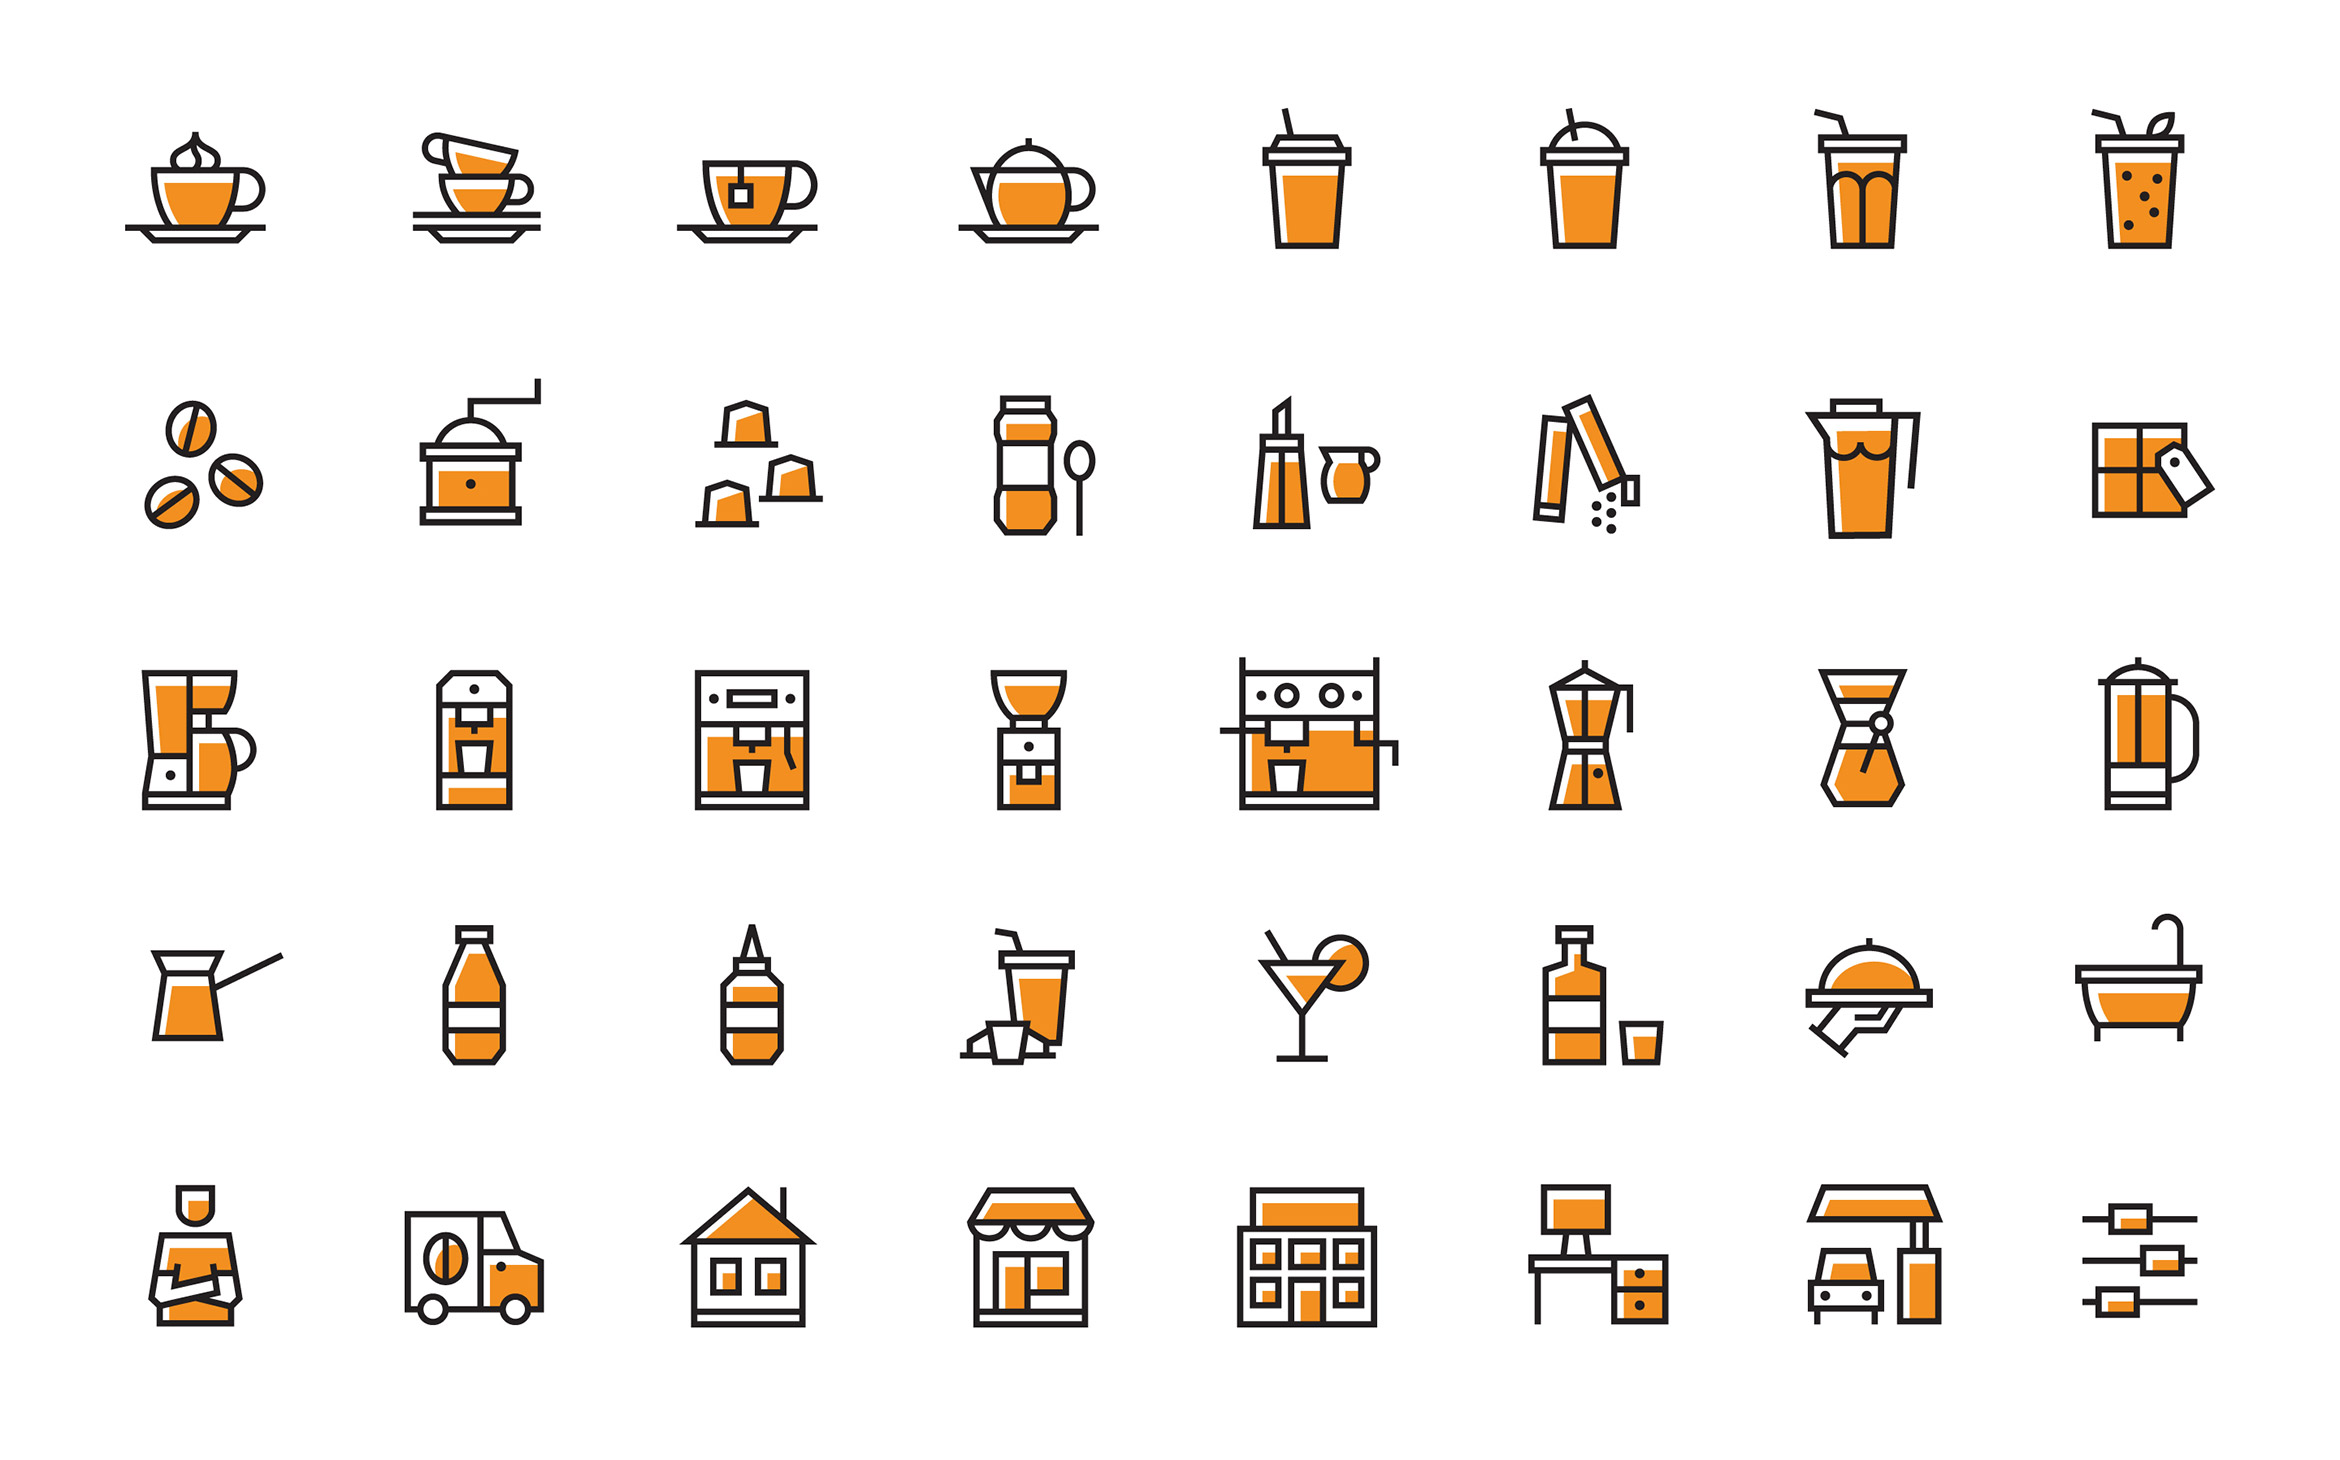 Coffee-Icon-Set-By-Jan-Baca